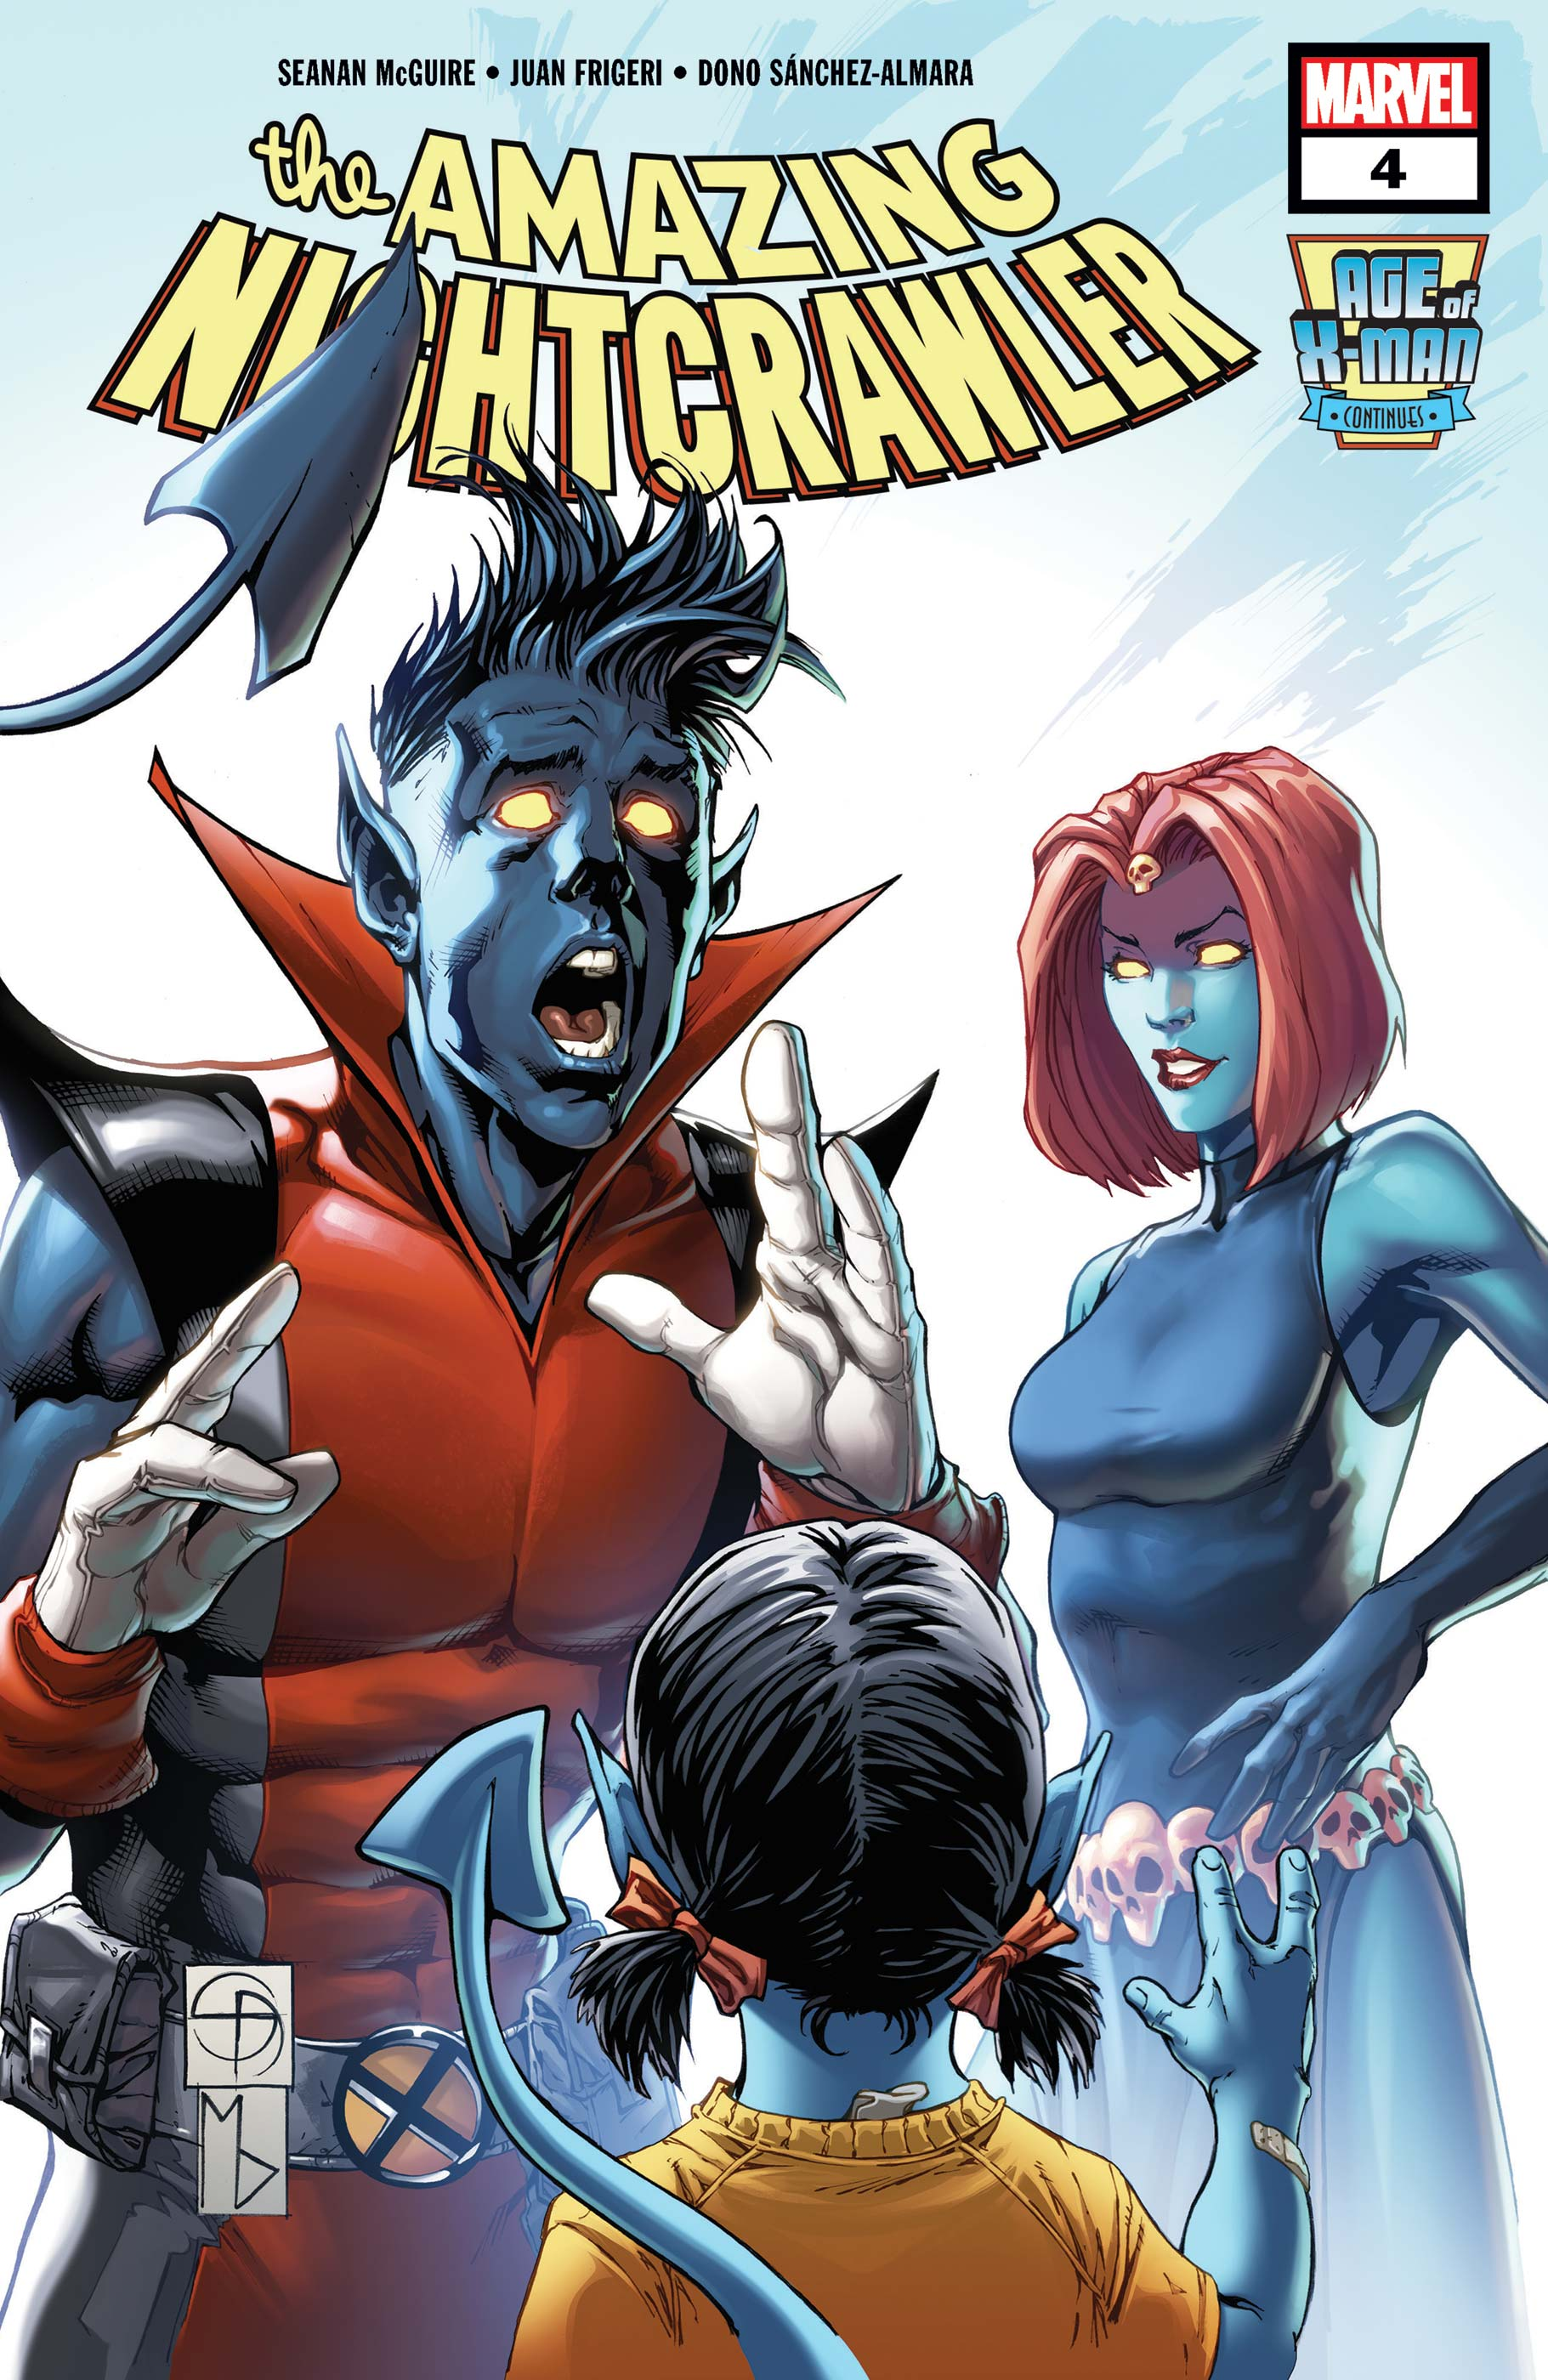 Age of X-Man: The Amazing Nightcrawler (2019) #4